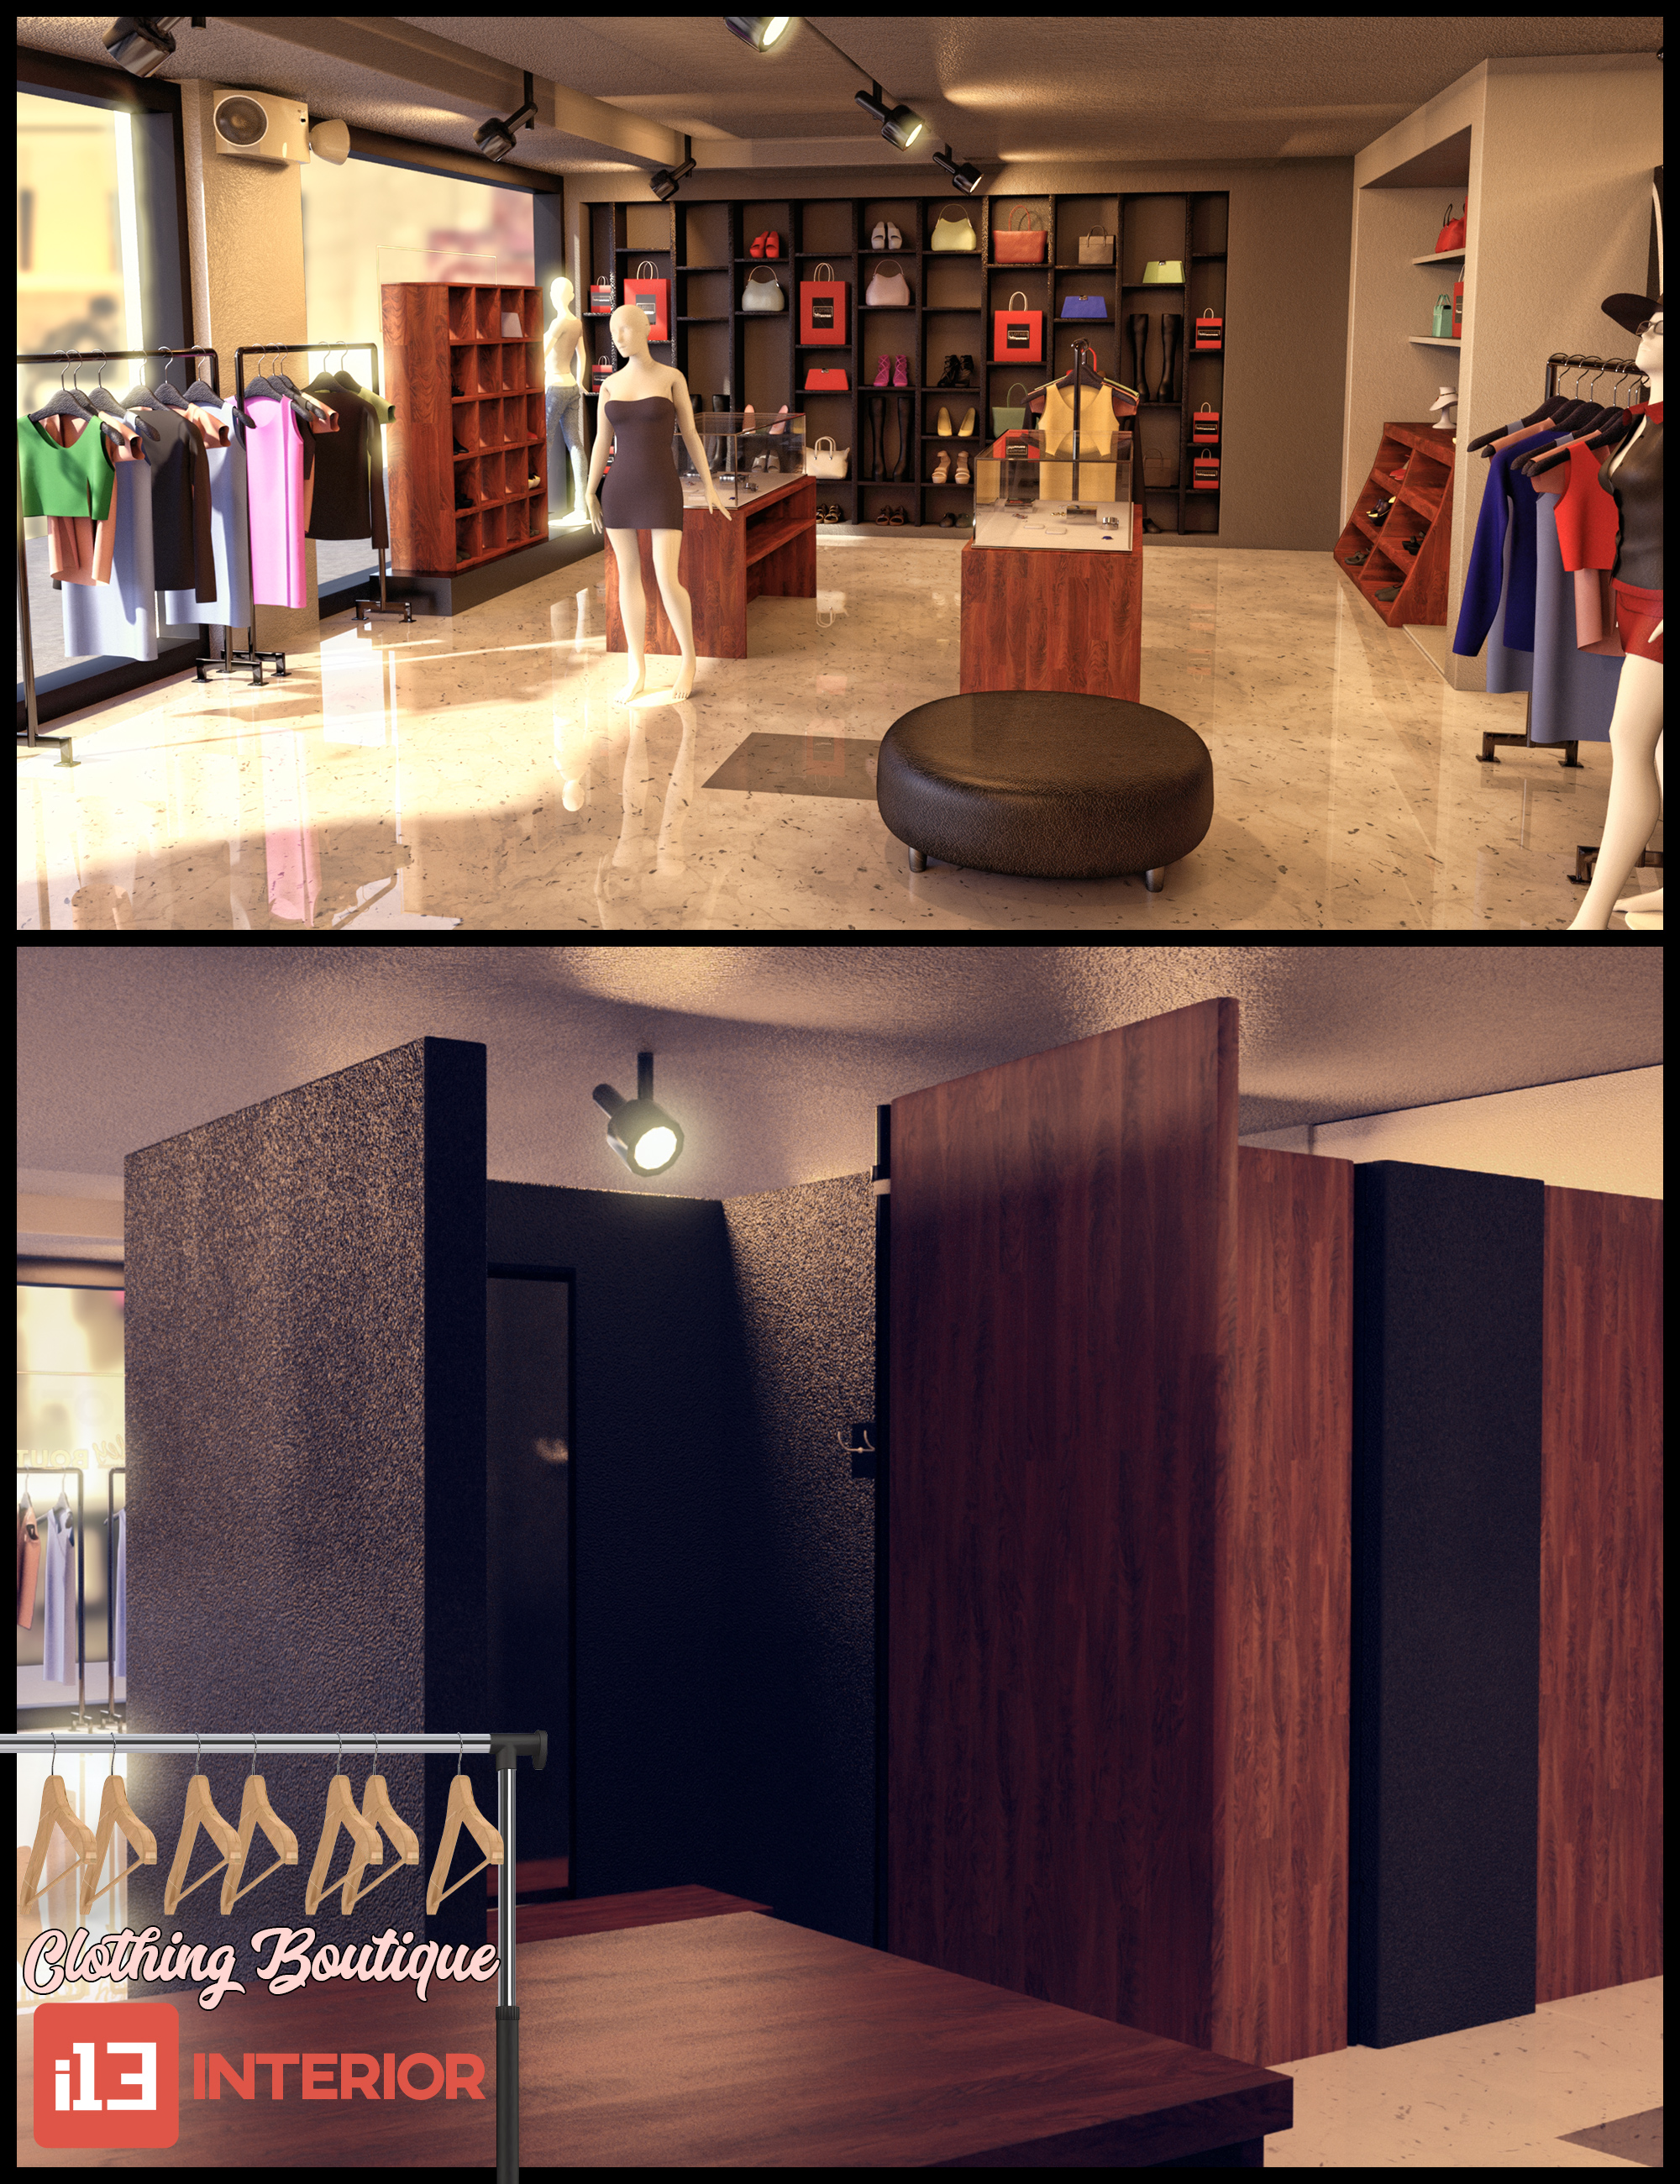 i13 Clothing Boutique Interior by: ironman13, 3D Models by Daz 3D